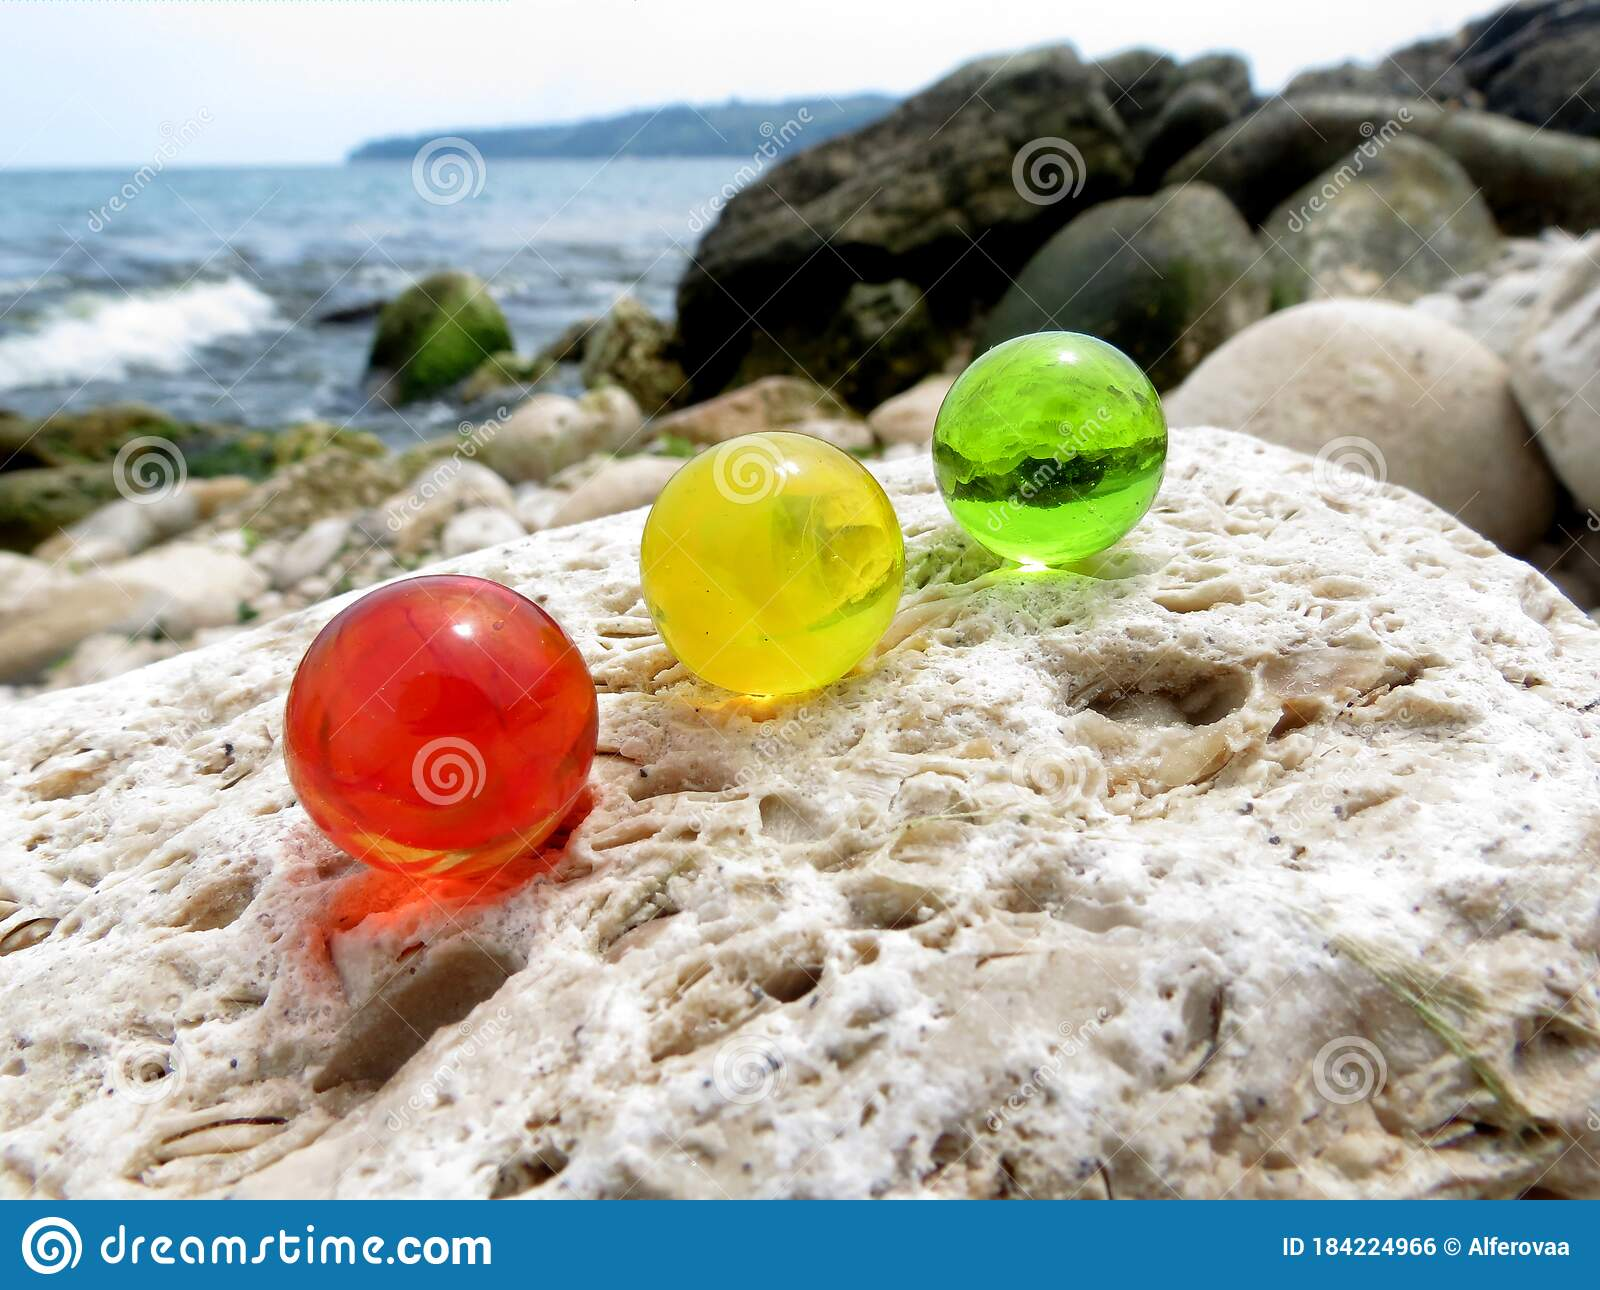 Colorful Glass Marbles On The Beige Rock Near The Sea Summer Mood Positive Start Of The Day Stock Photo Image Of Mood Sunny 184224966